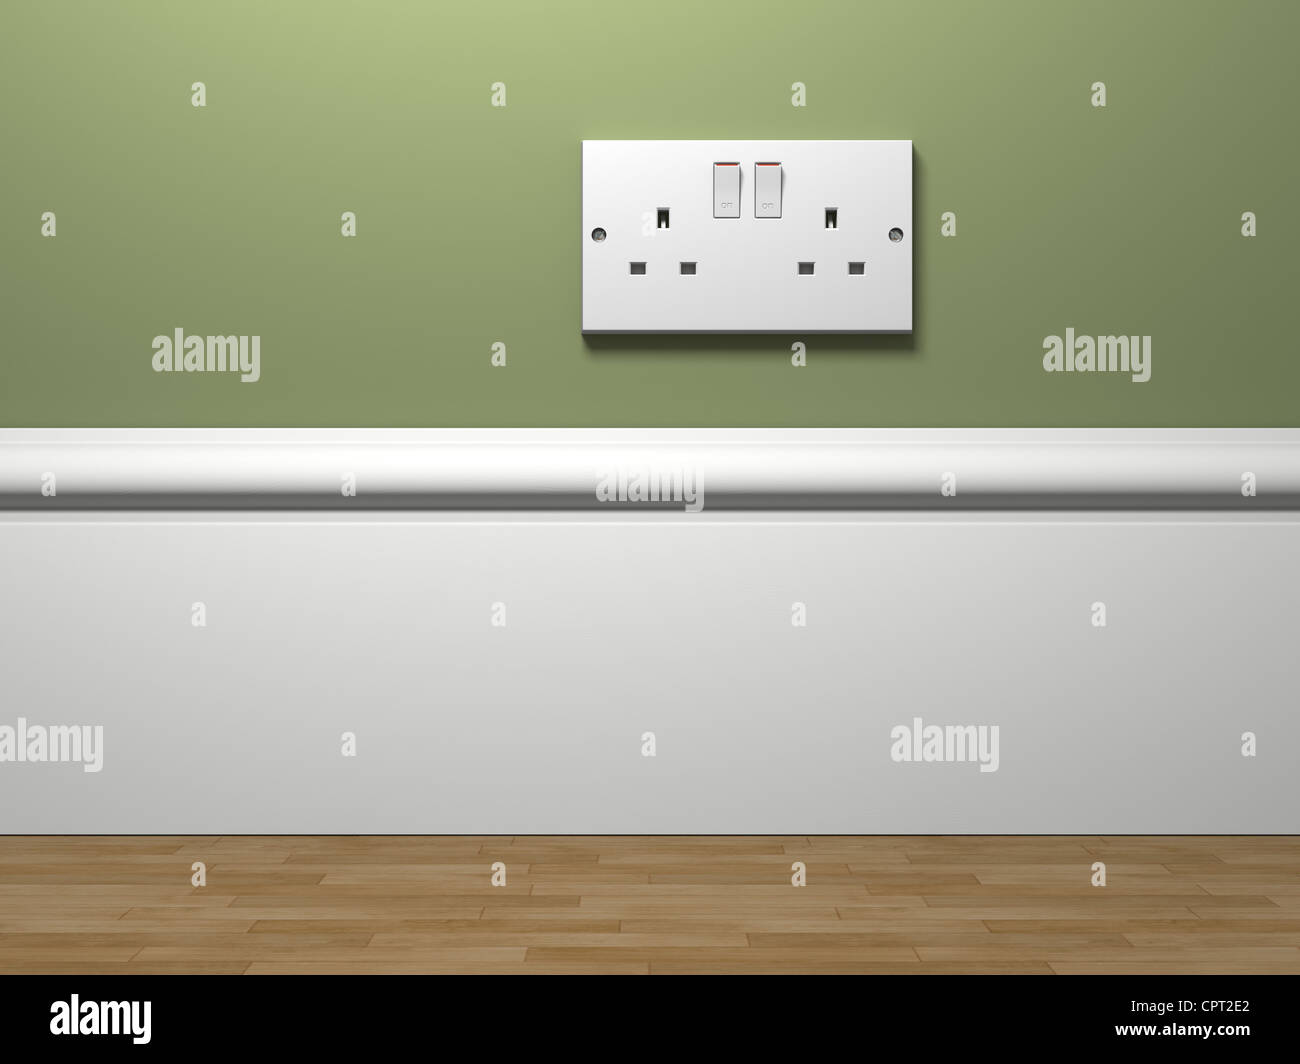 photorealistic 3d image of a common household power socket in the ...